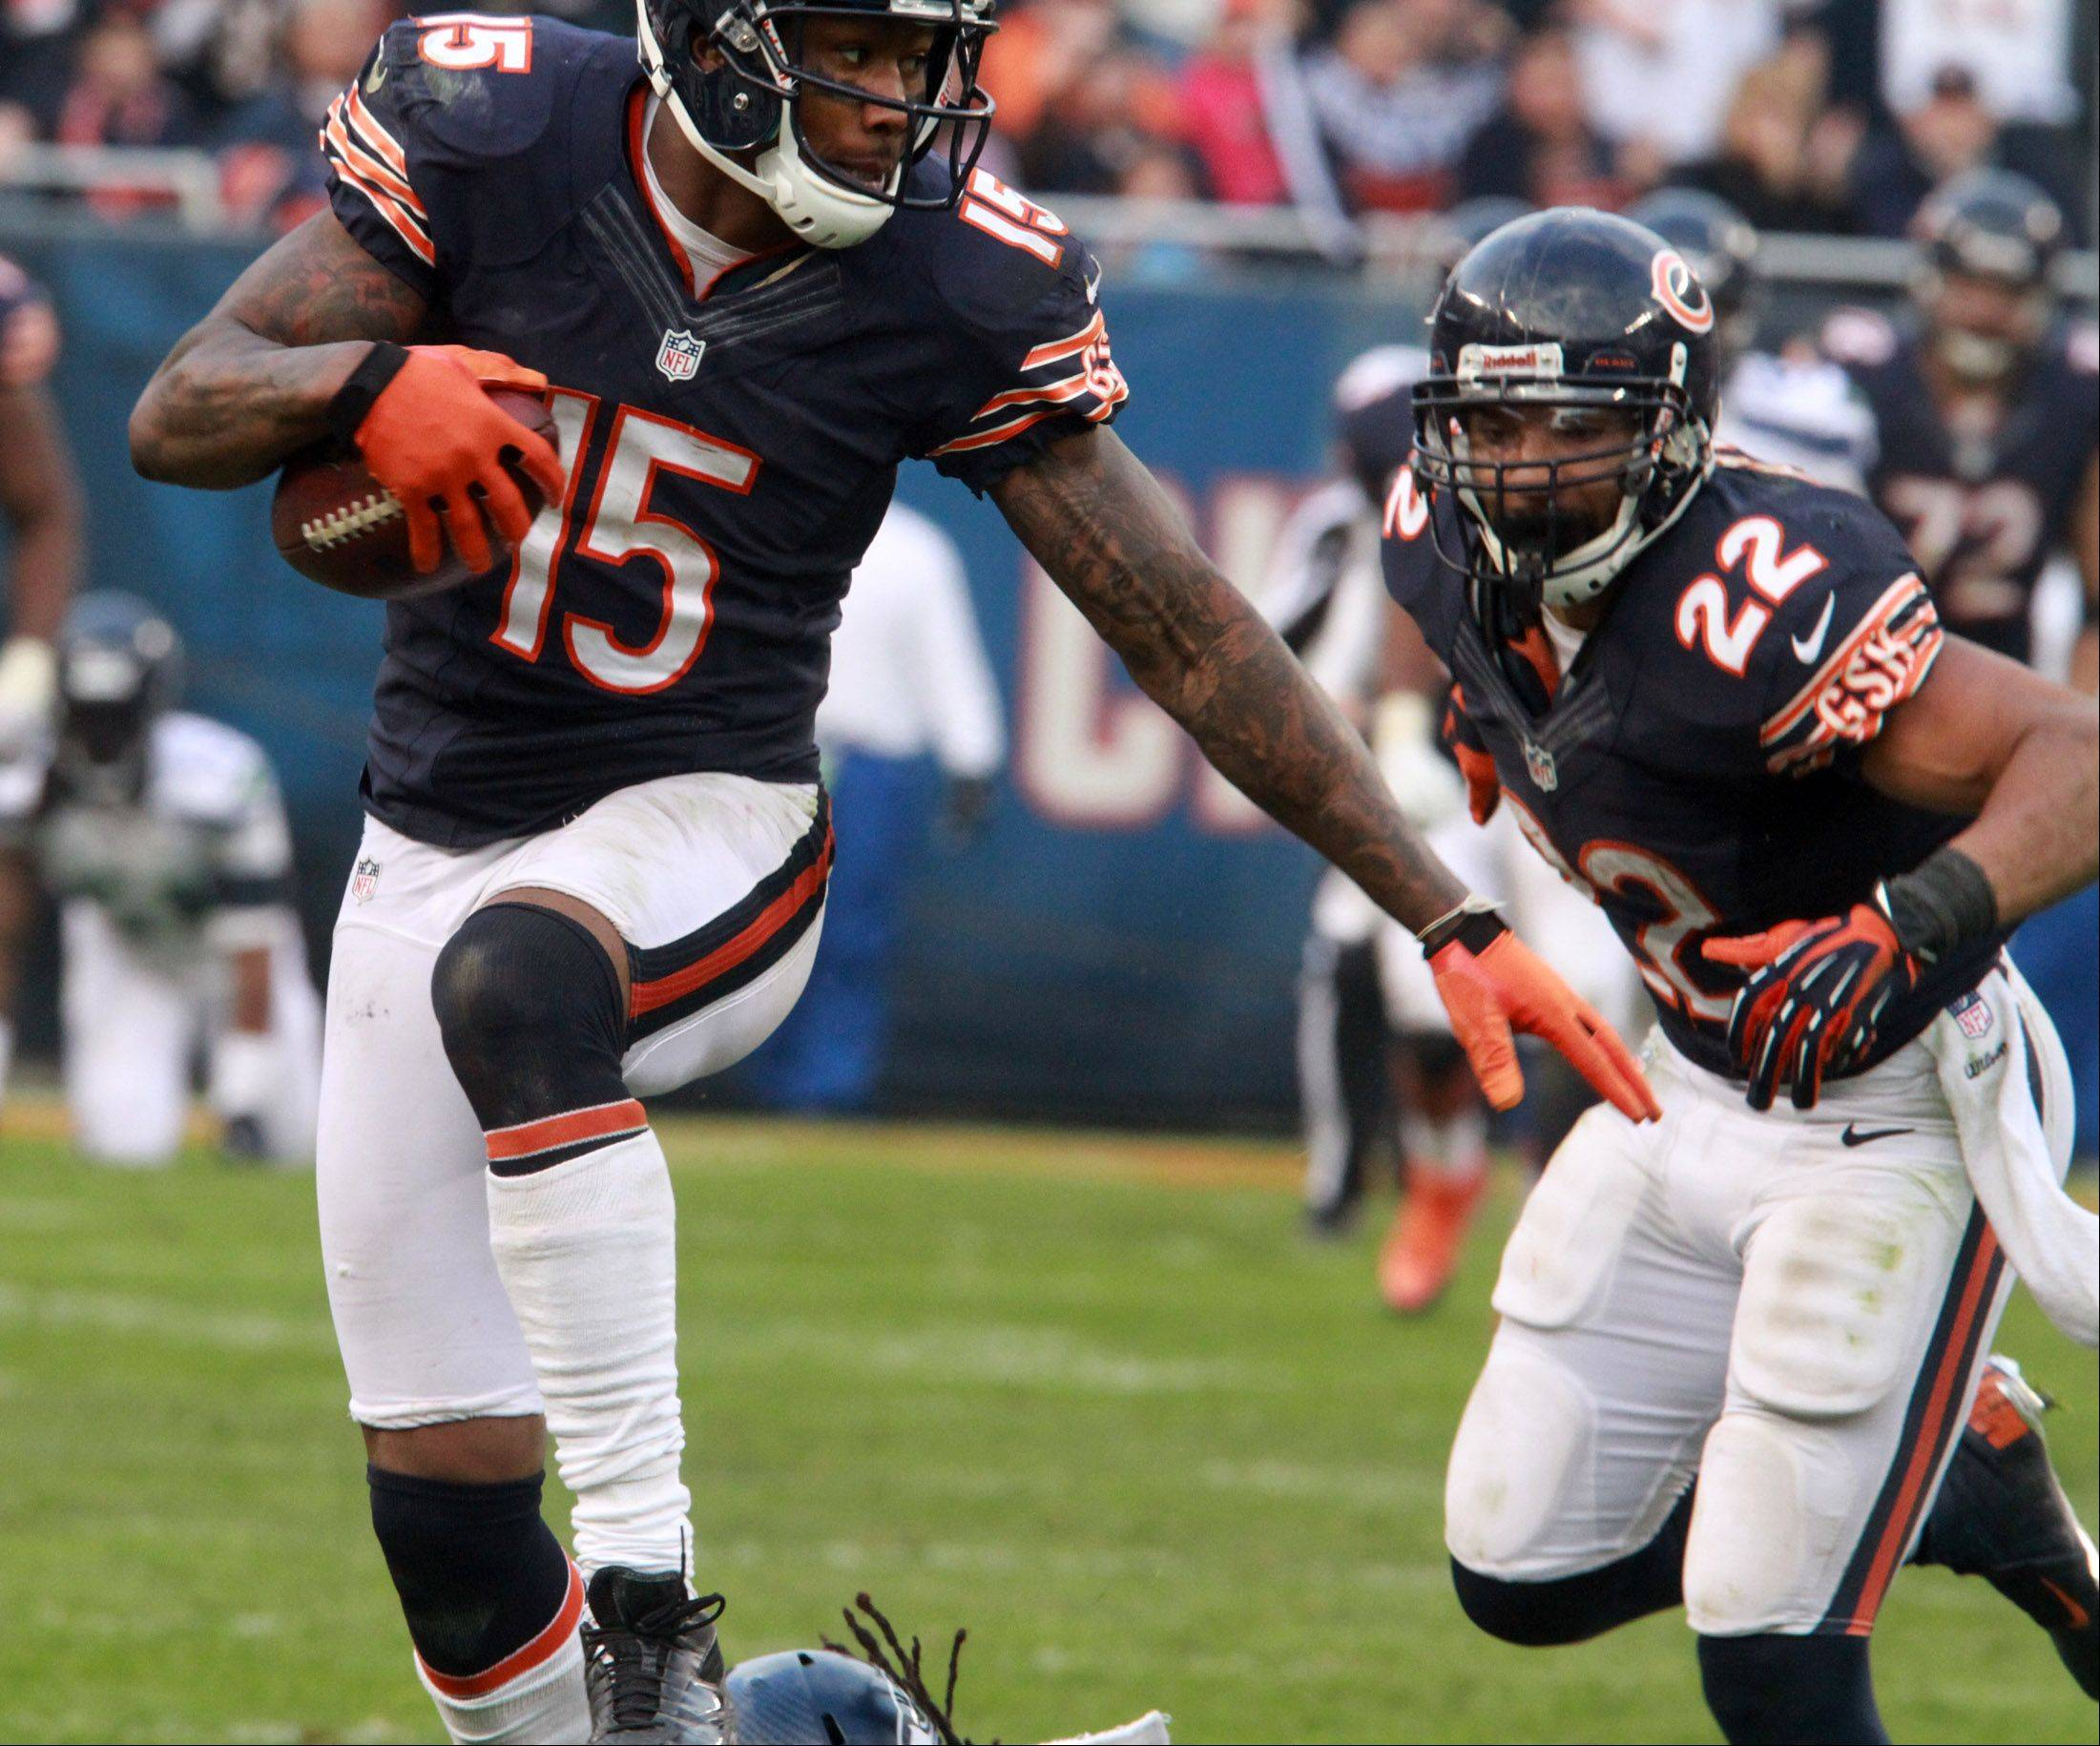 The Bears believe wide receiver Brandon Marshall will be ready to step up his game when the season opens Sunday against the Bengals.